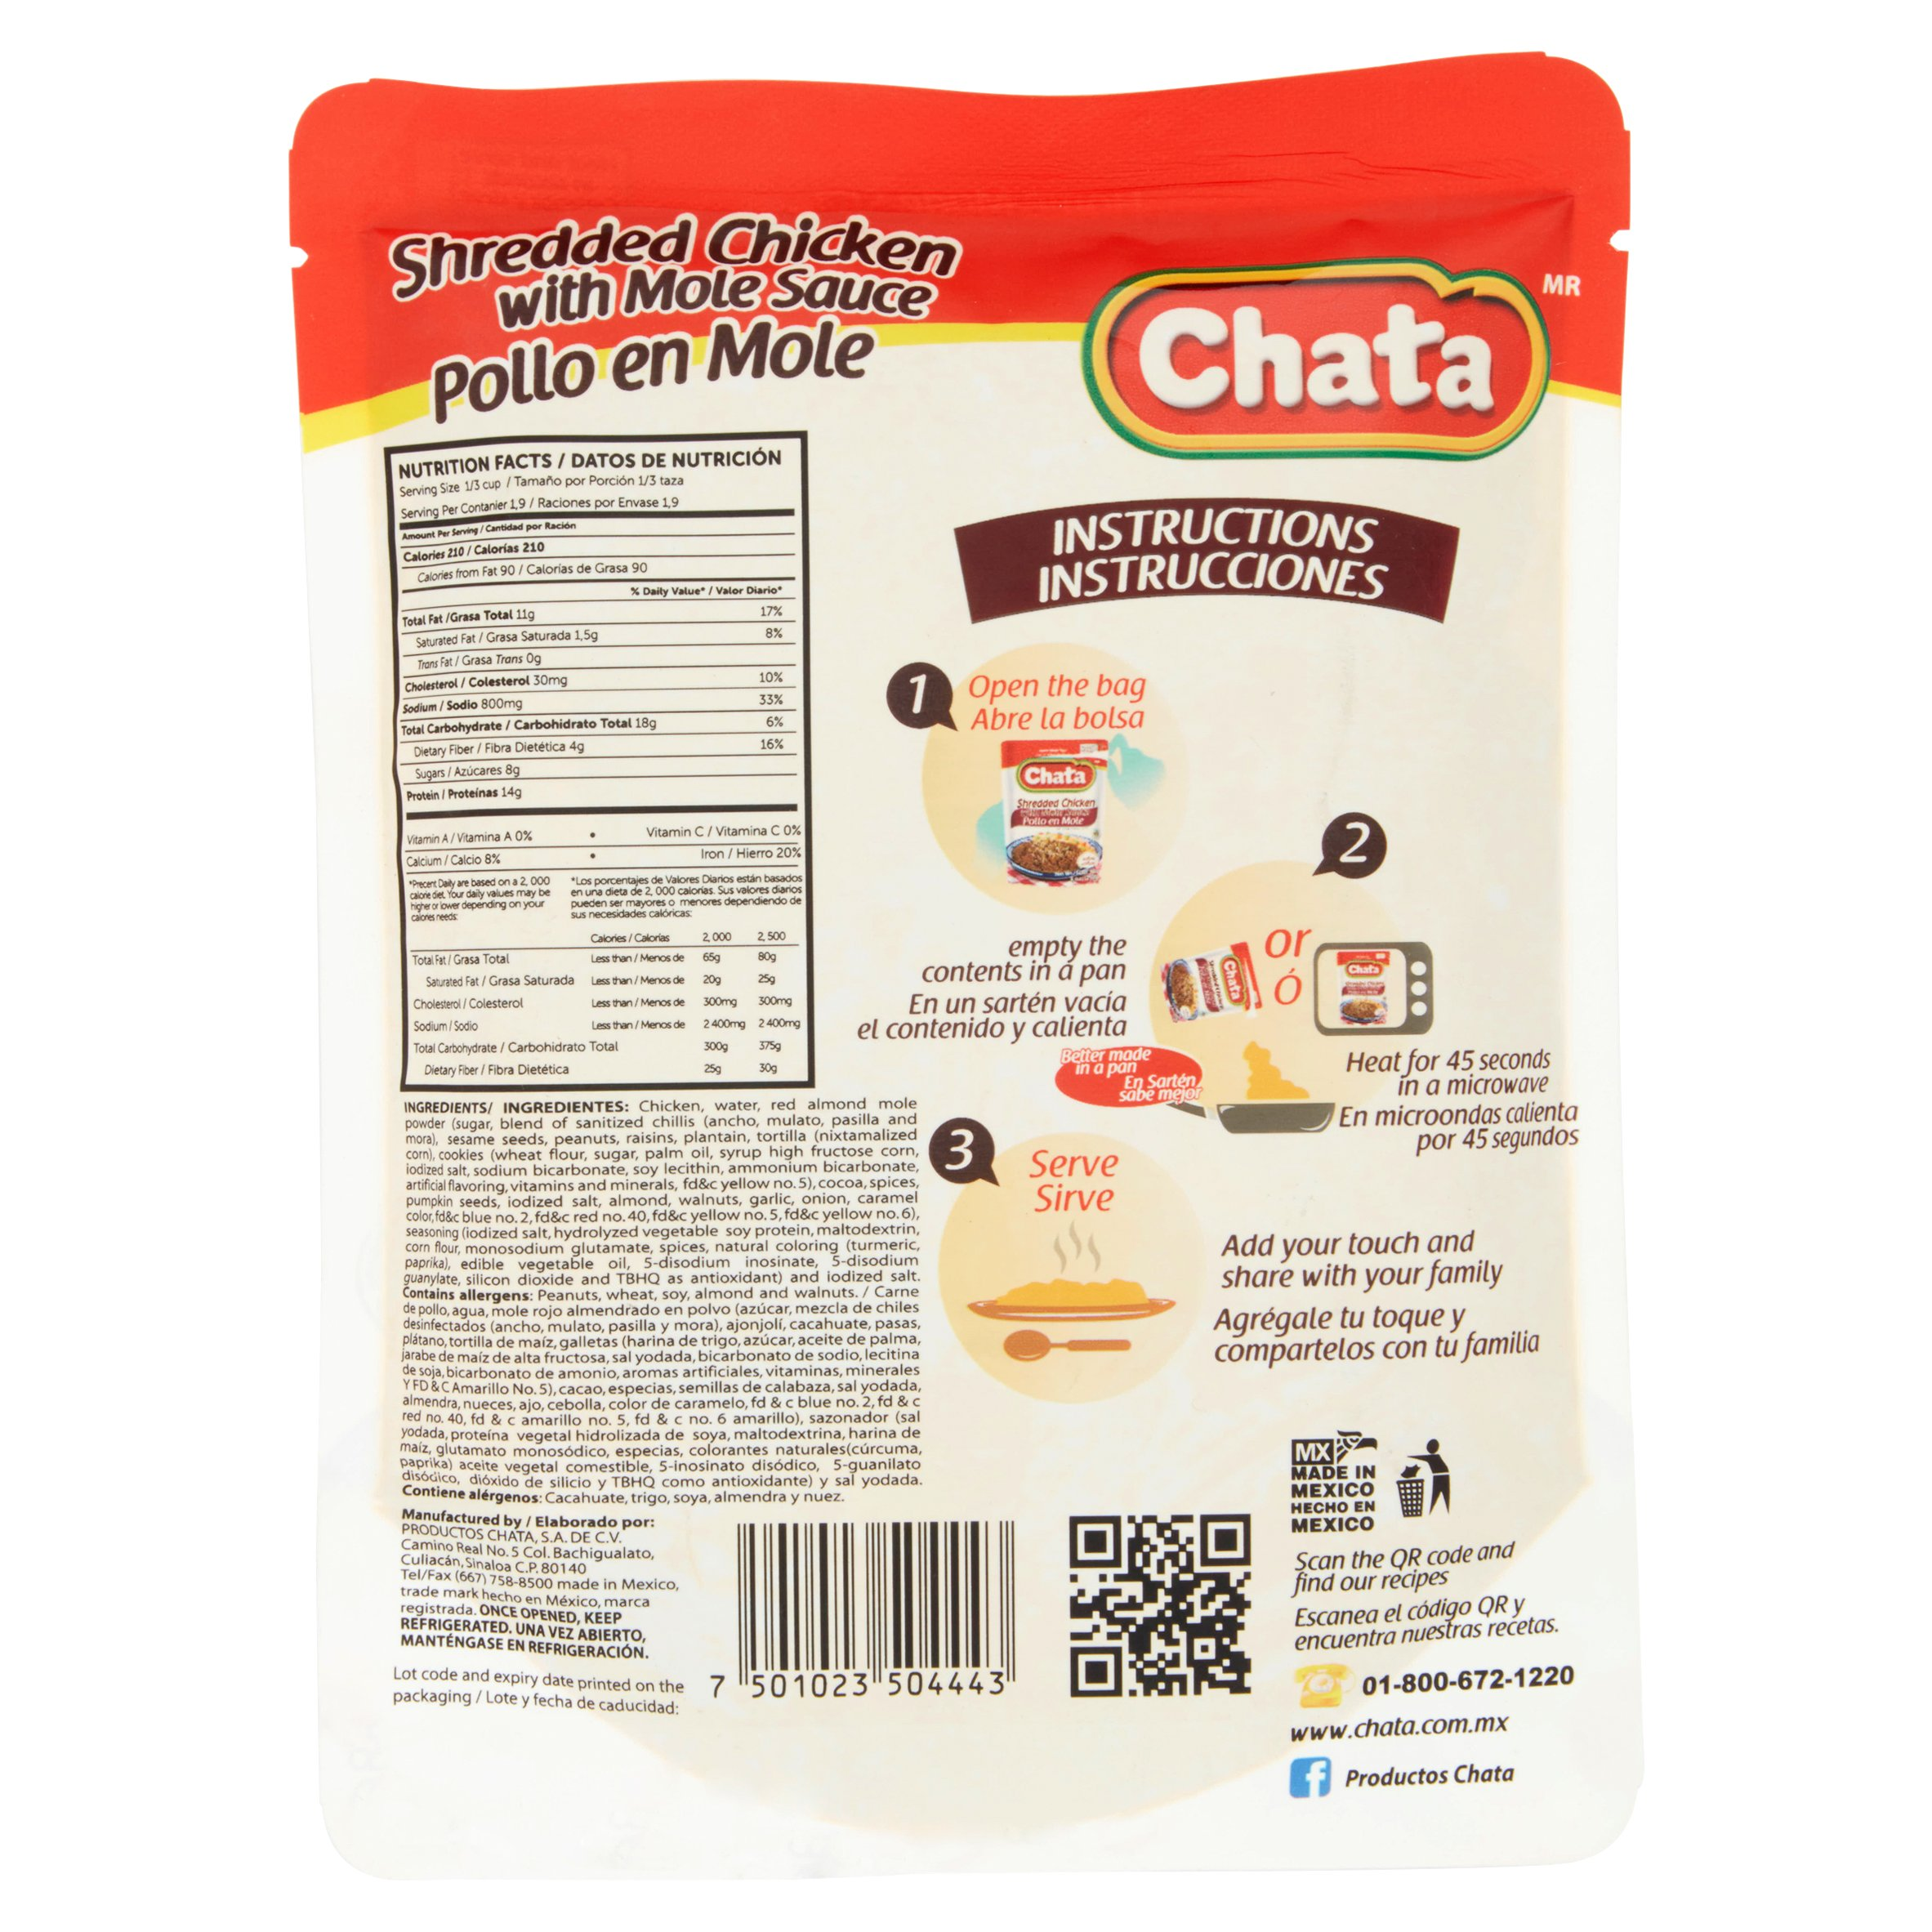 Chata Shredded Chicken with Mole Sauce, 8 8 oz